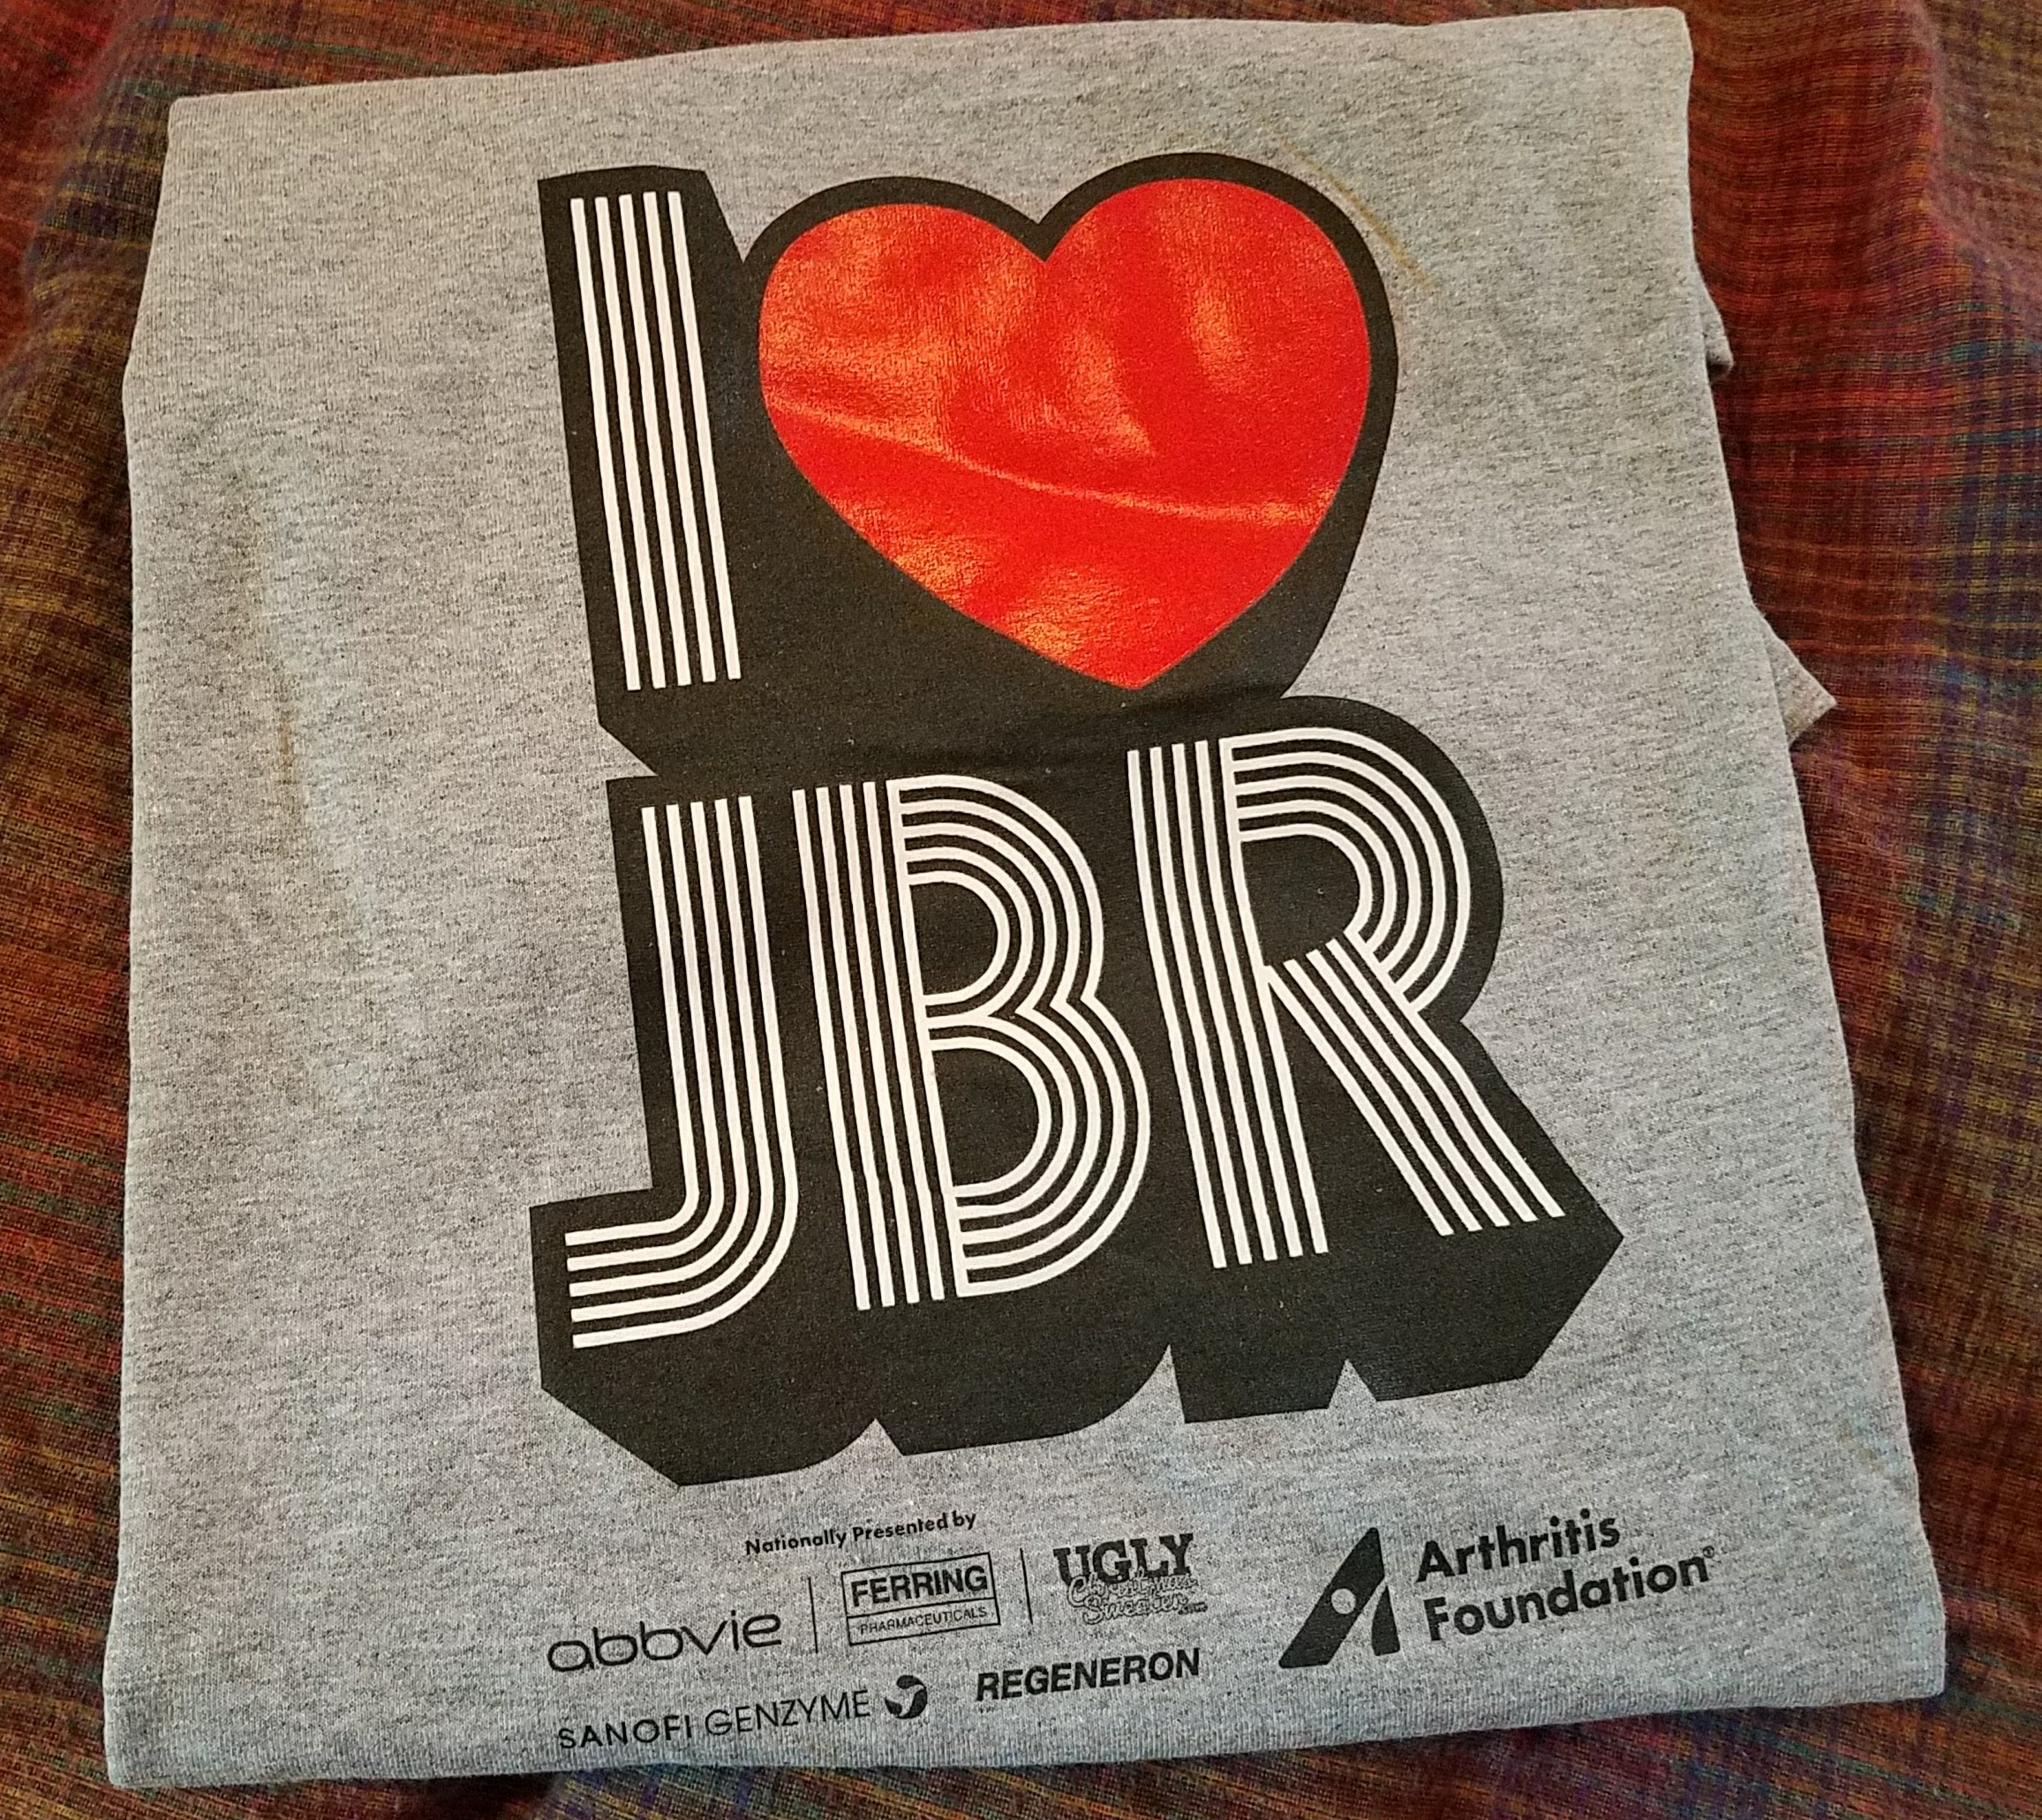 Jingle Bell Run Participant T-Shirt